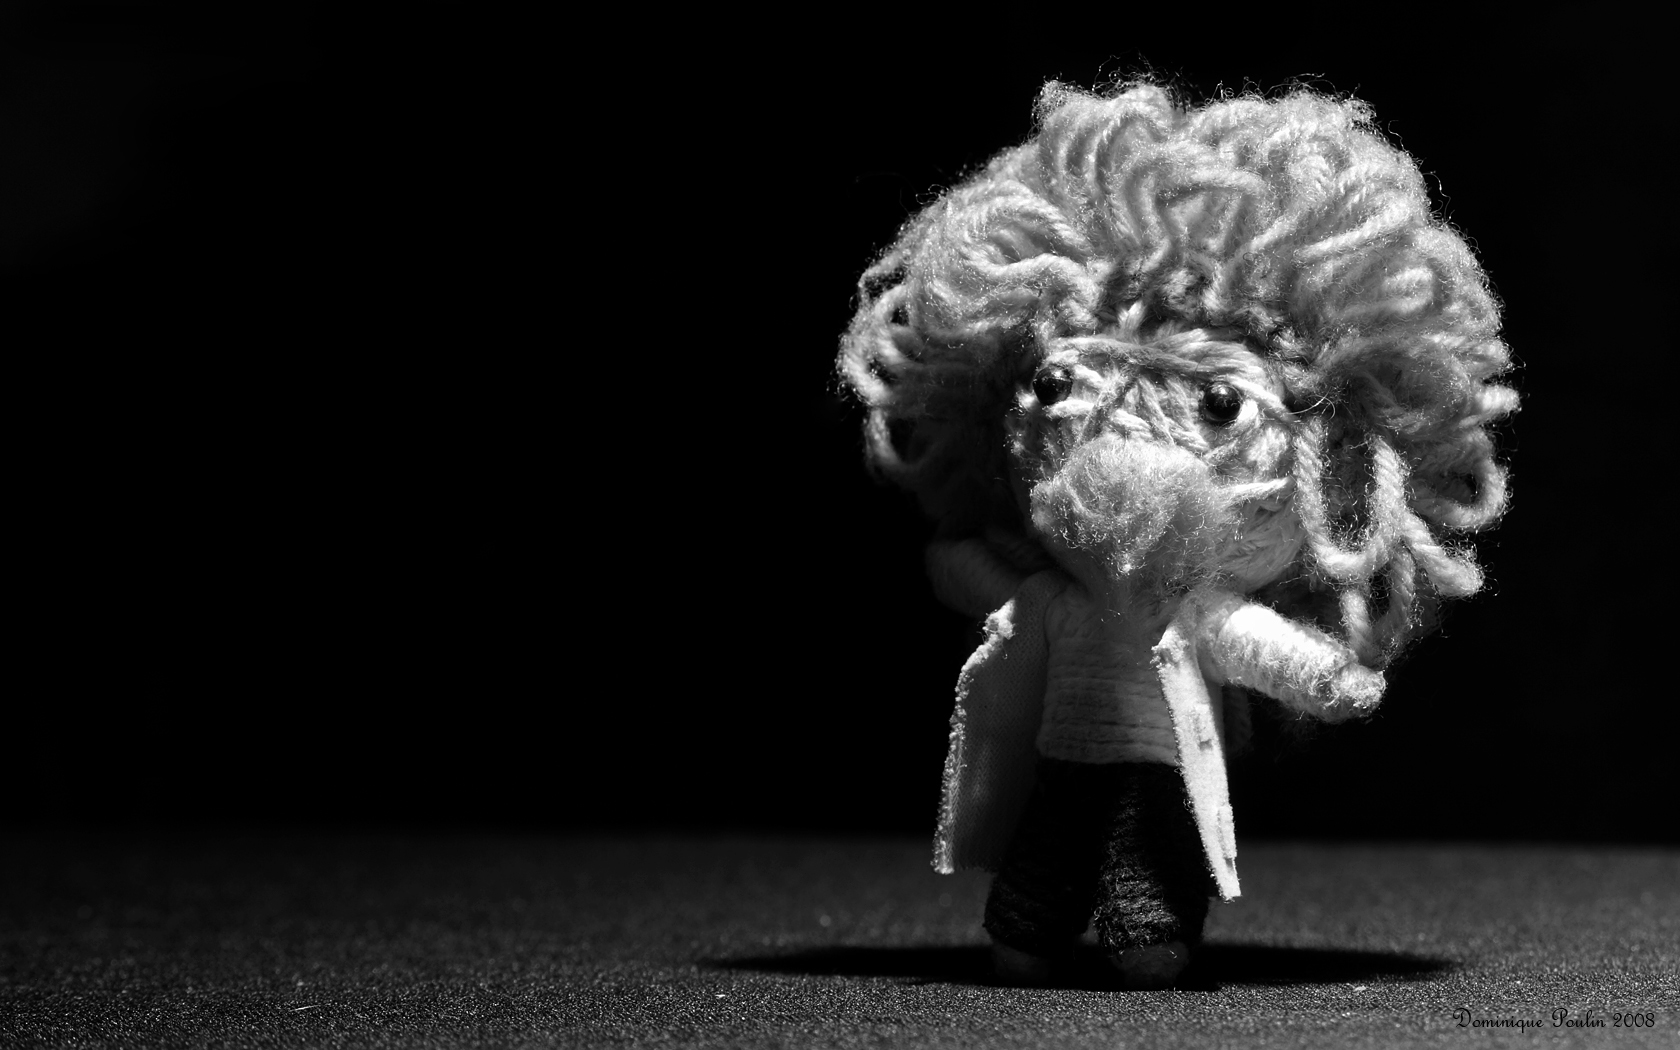 voodoo Einstein by hows HD Wallpaper